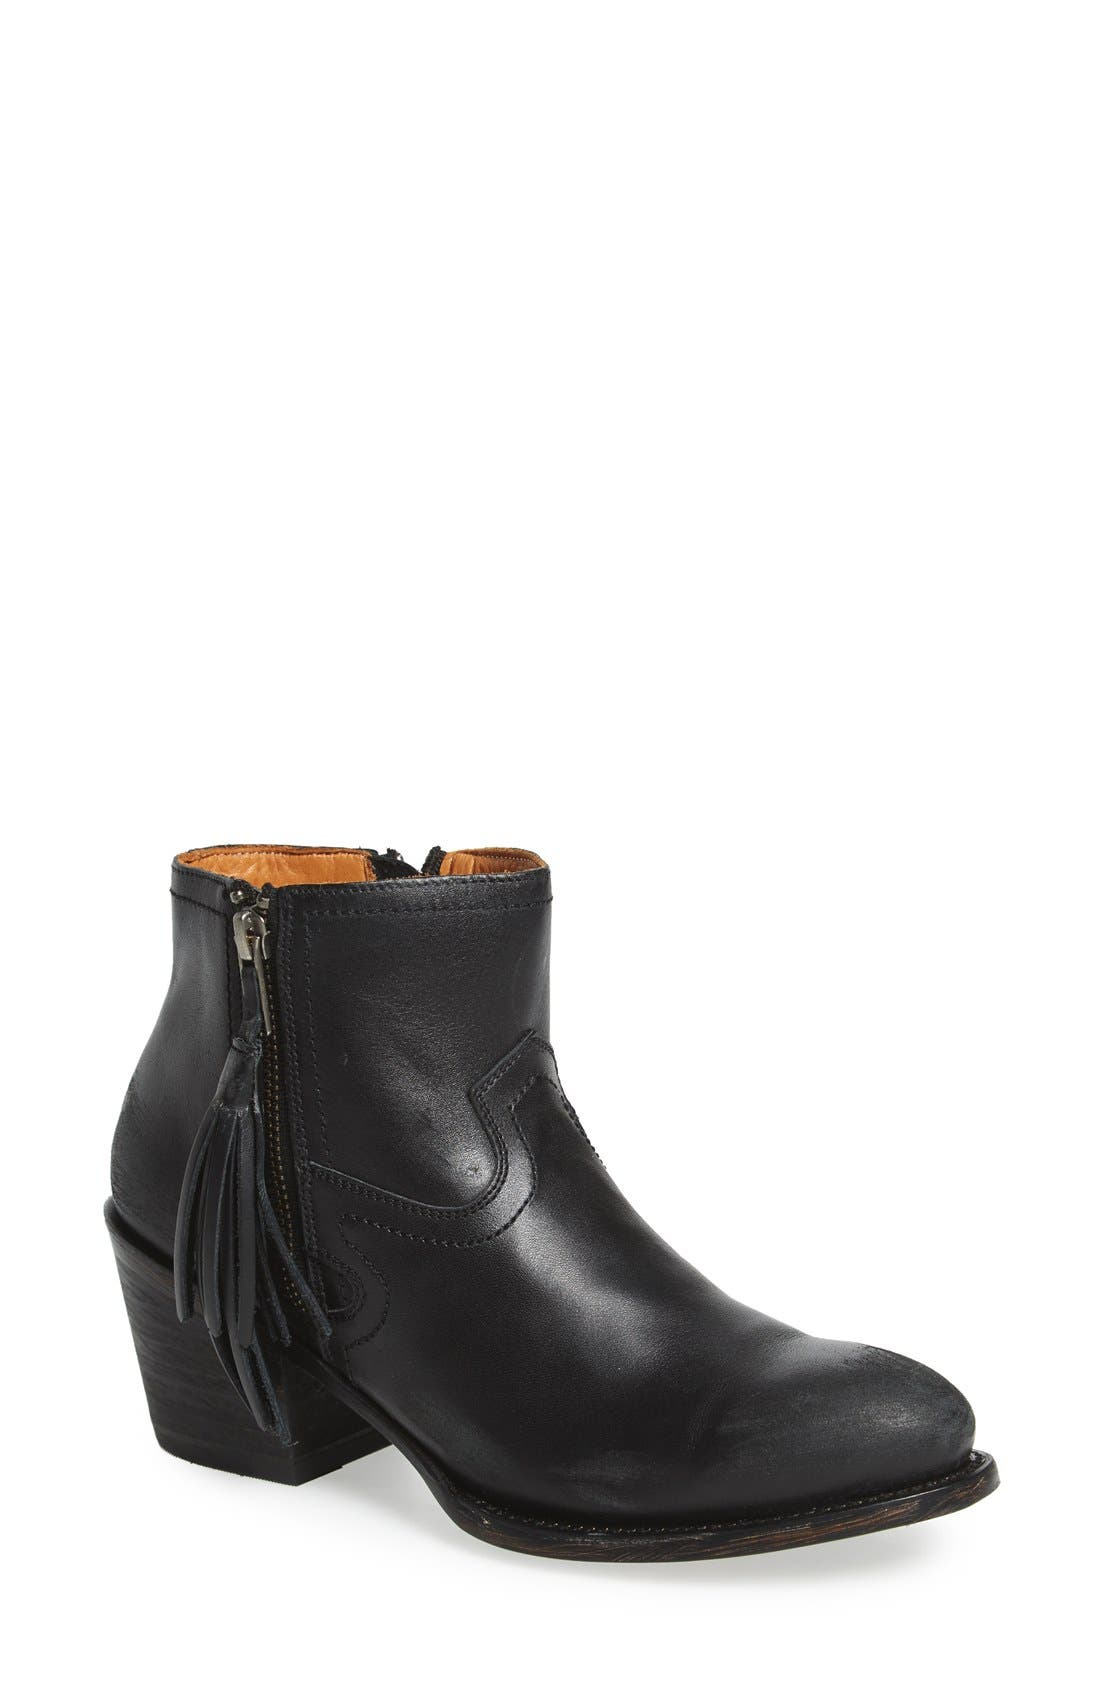 BASKE CALIFORNIA 'Amador' Bootie